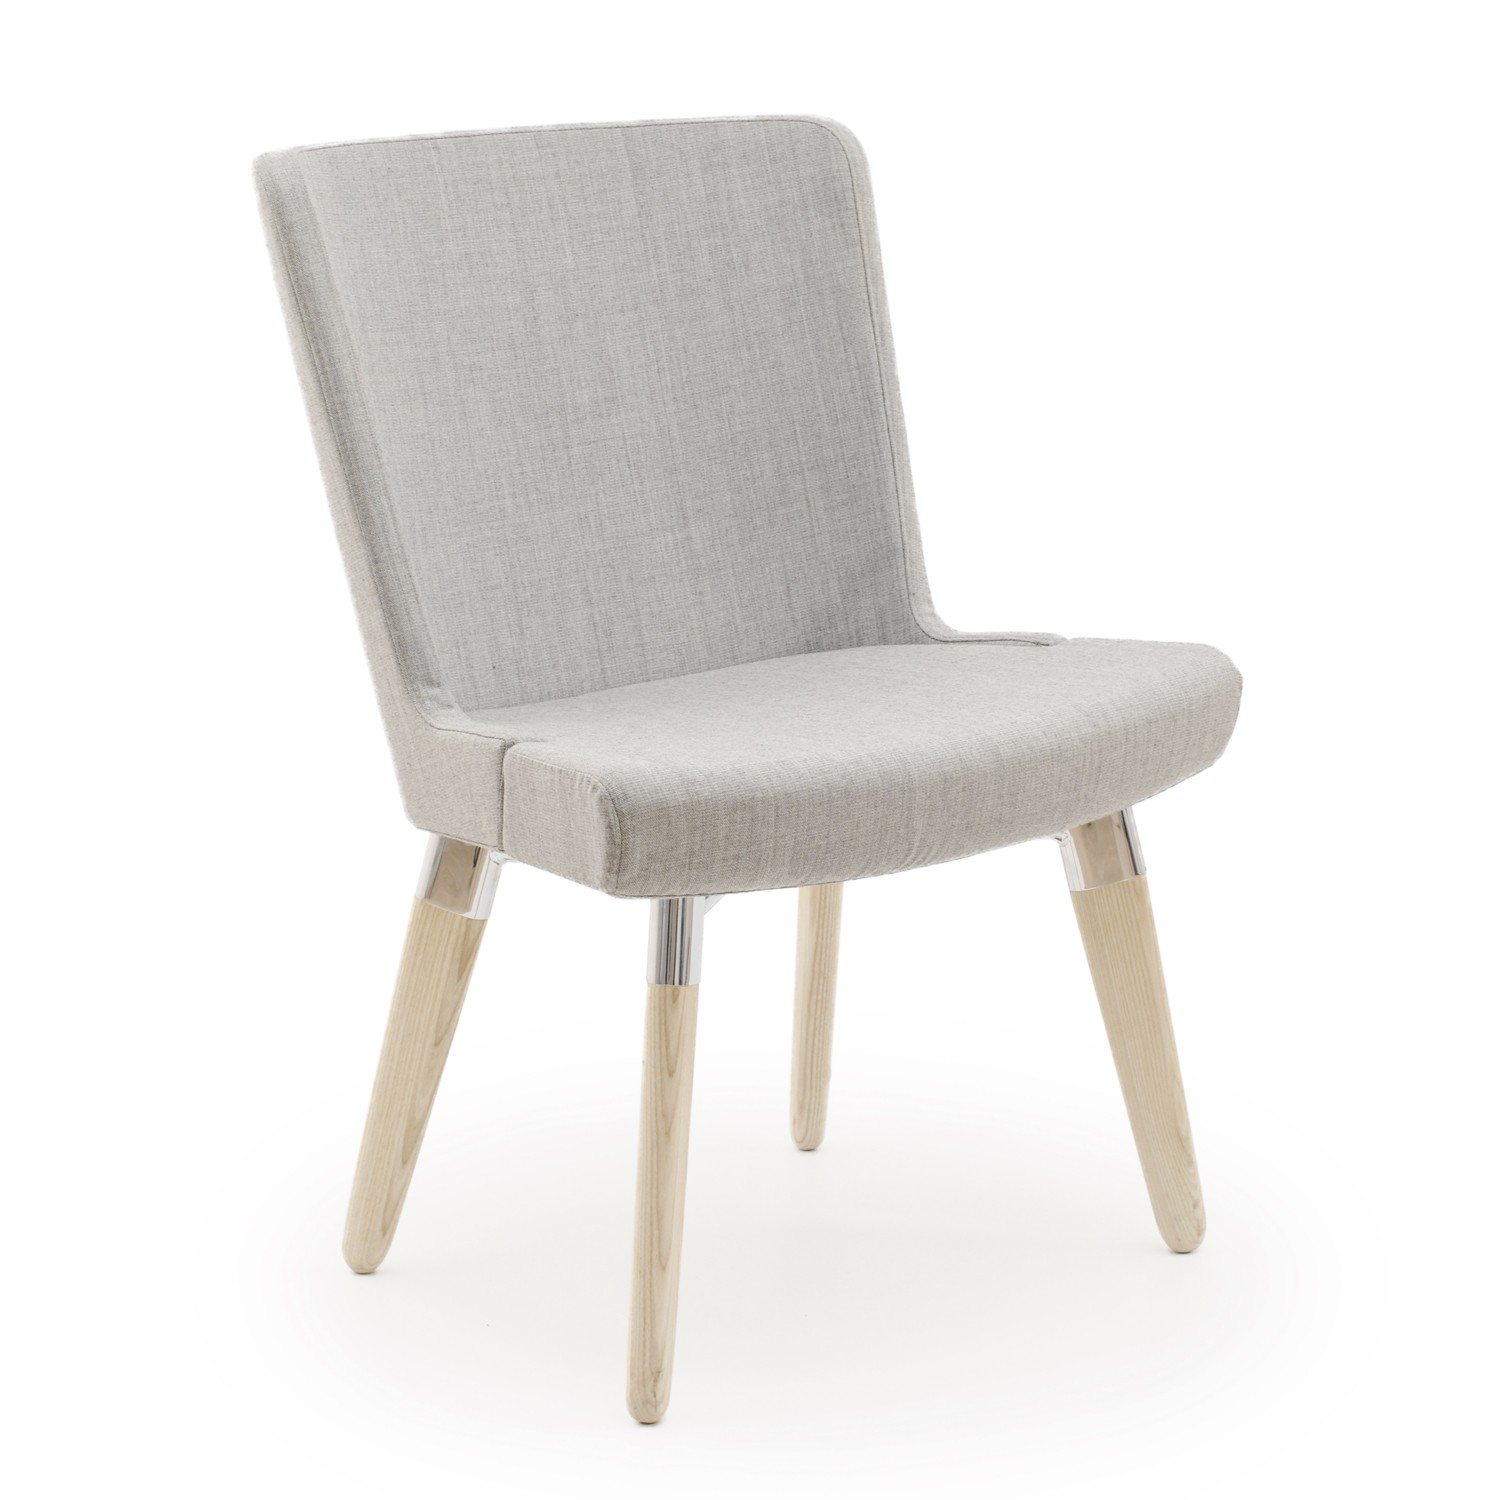 Heydon Fully Upholstered Chair (No Arms)